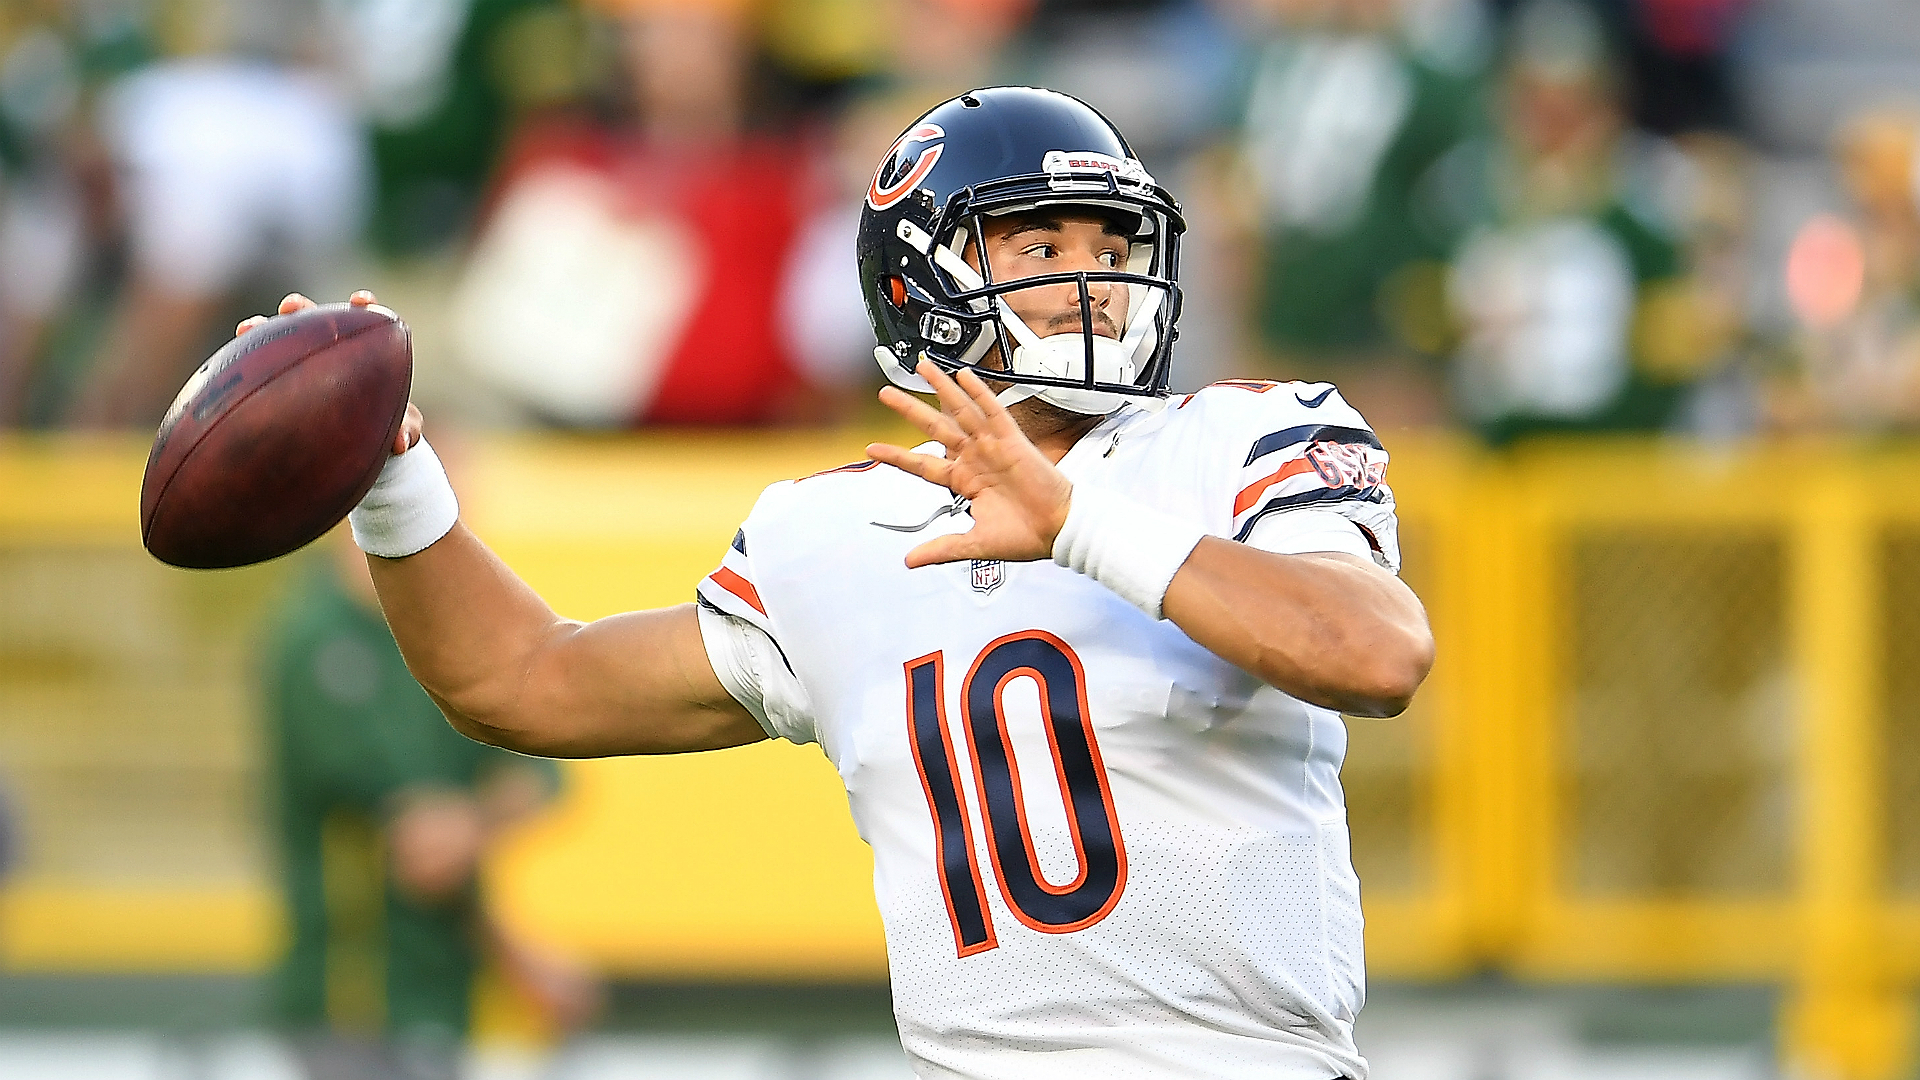 Chicago Bears: 3 questions going into showdown with Miami Dolphins